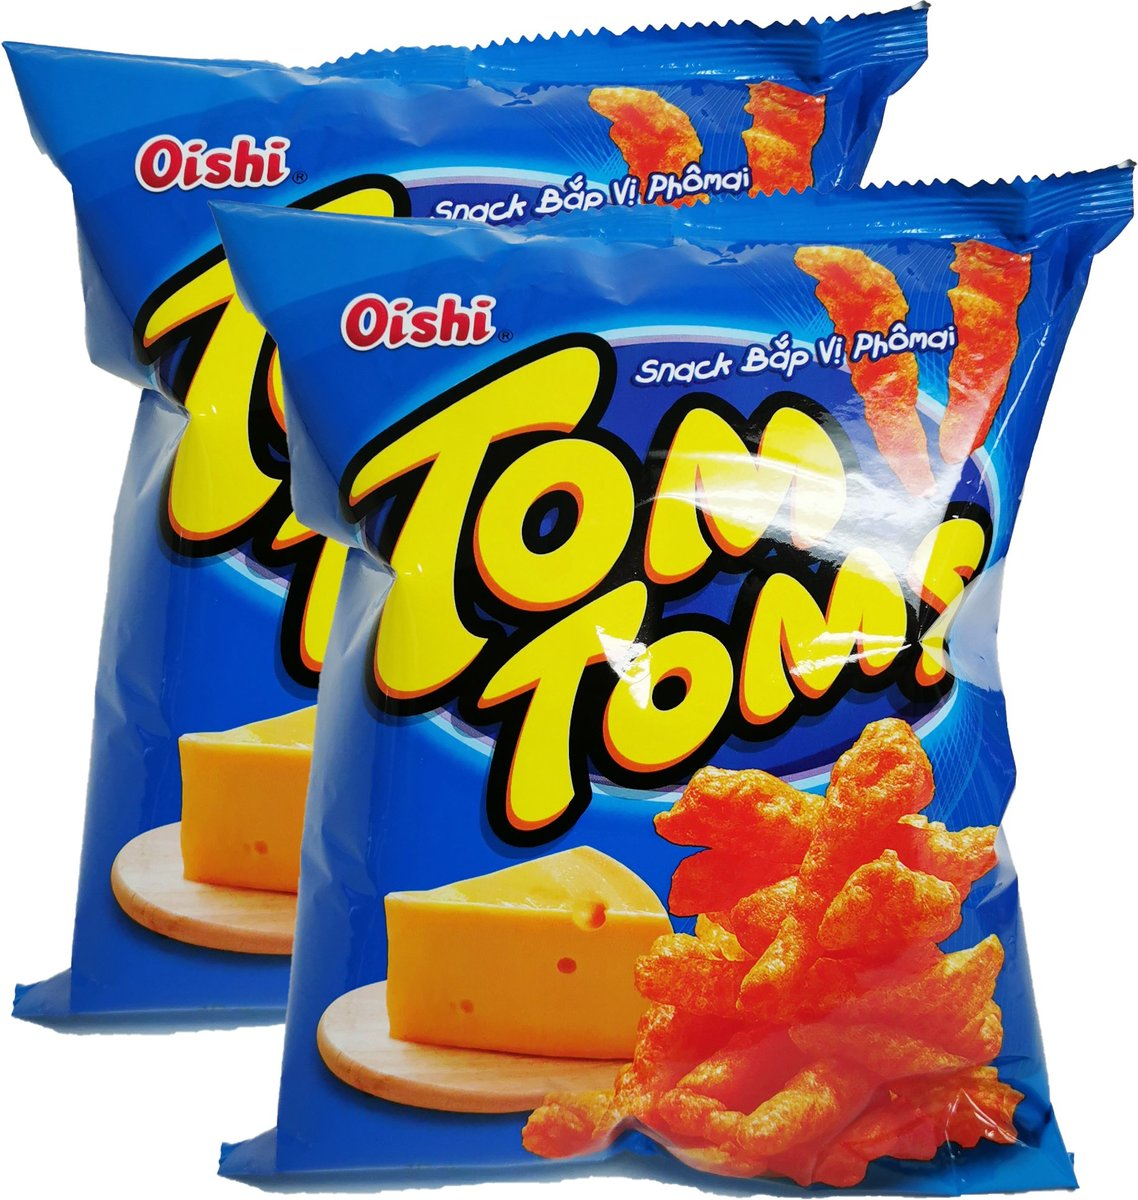 Tom Tom's Corn Snack (Cheese Flavour) (42g X 2)